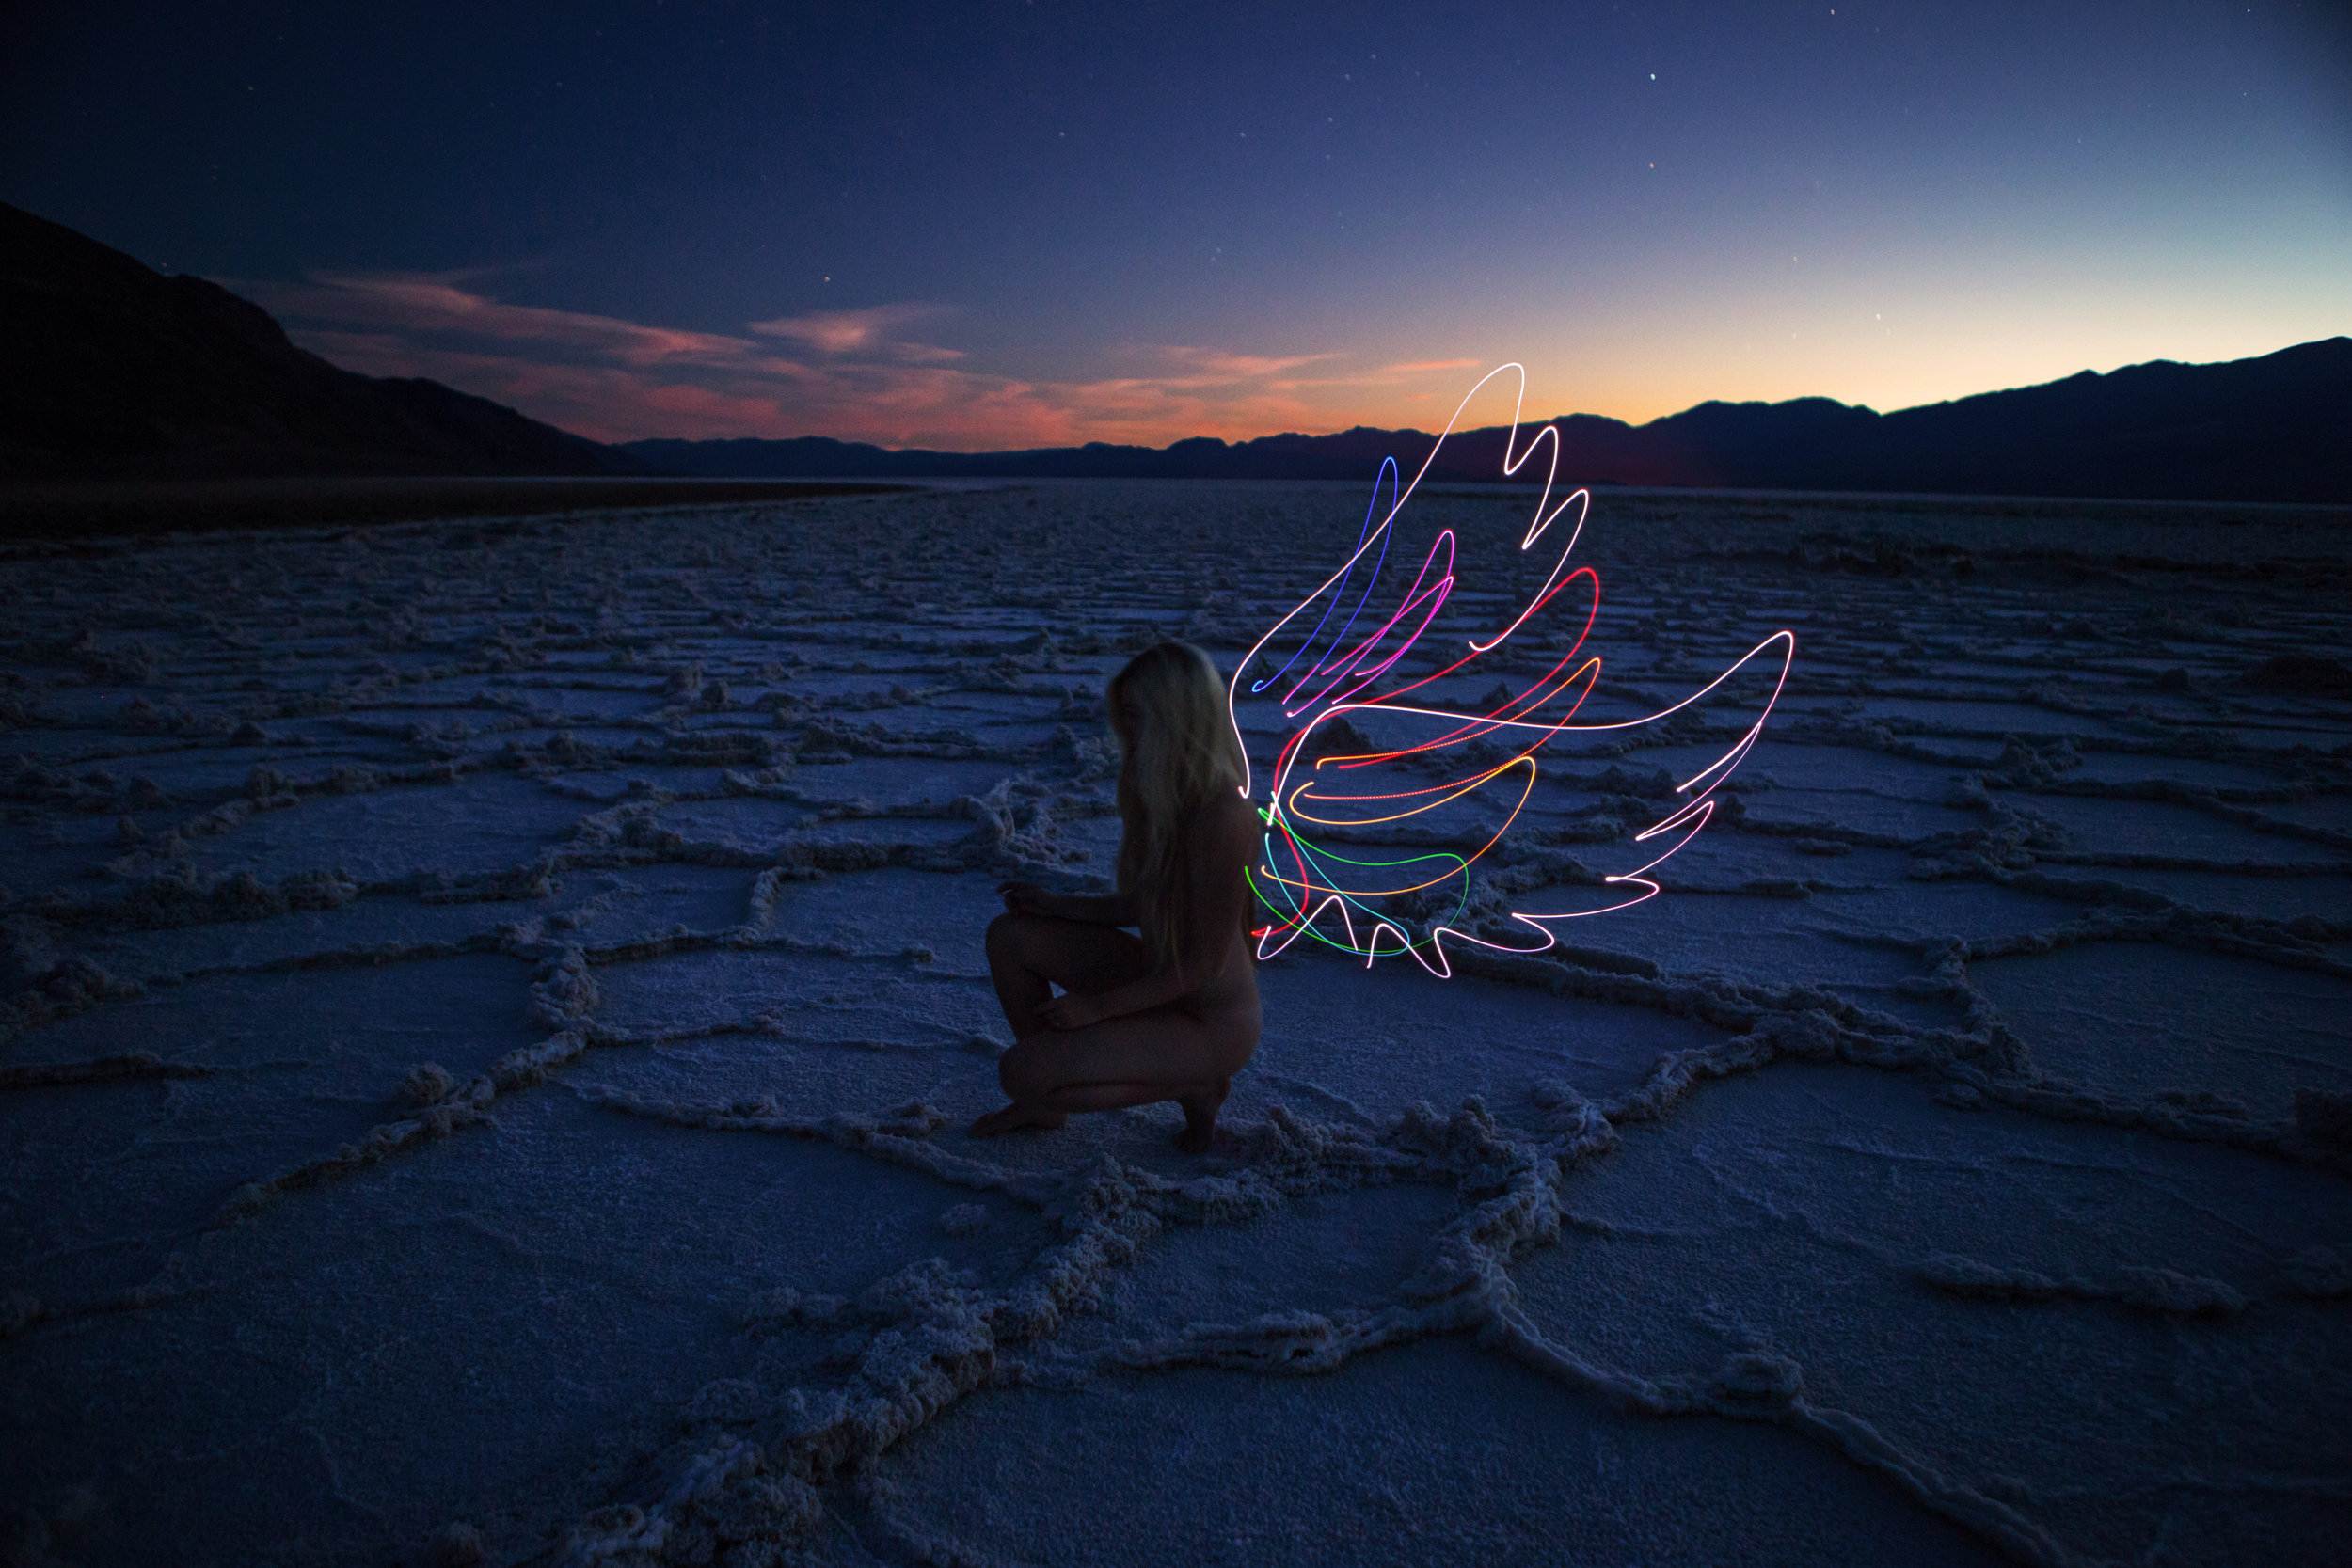 AstroBandit_JordanRose_DariusTwin_DarrenPearson_LightPainting_BadwaterBasin_DeathValley_BlueHour_Angel.jpg